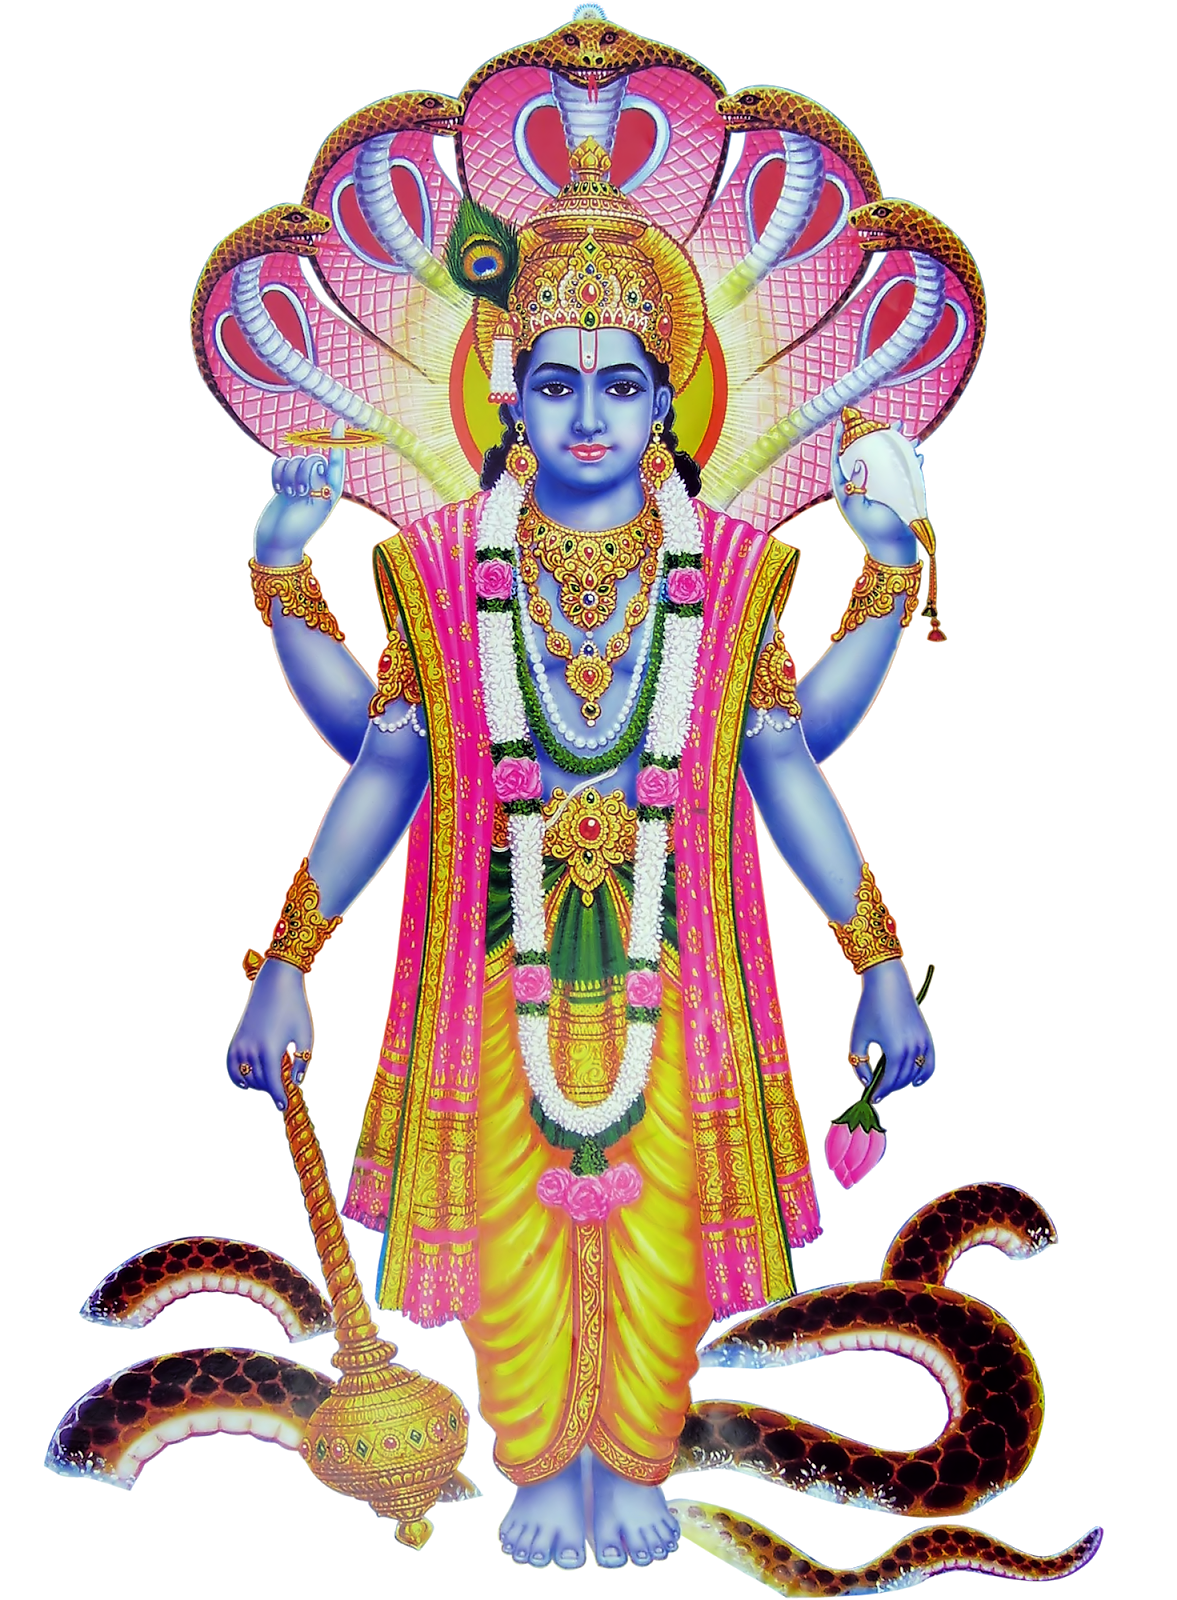 Gods cliparts and images. God clipart lord venkateswara